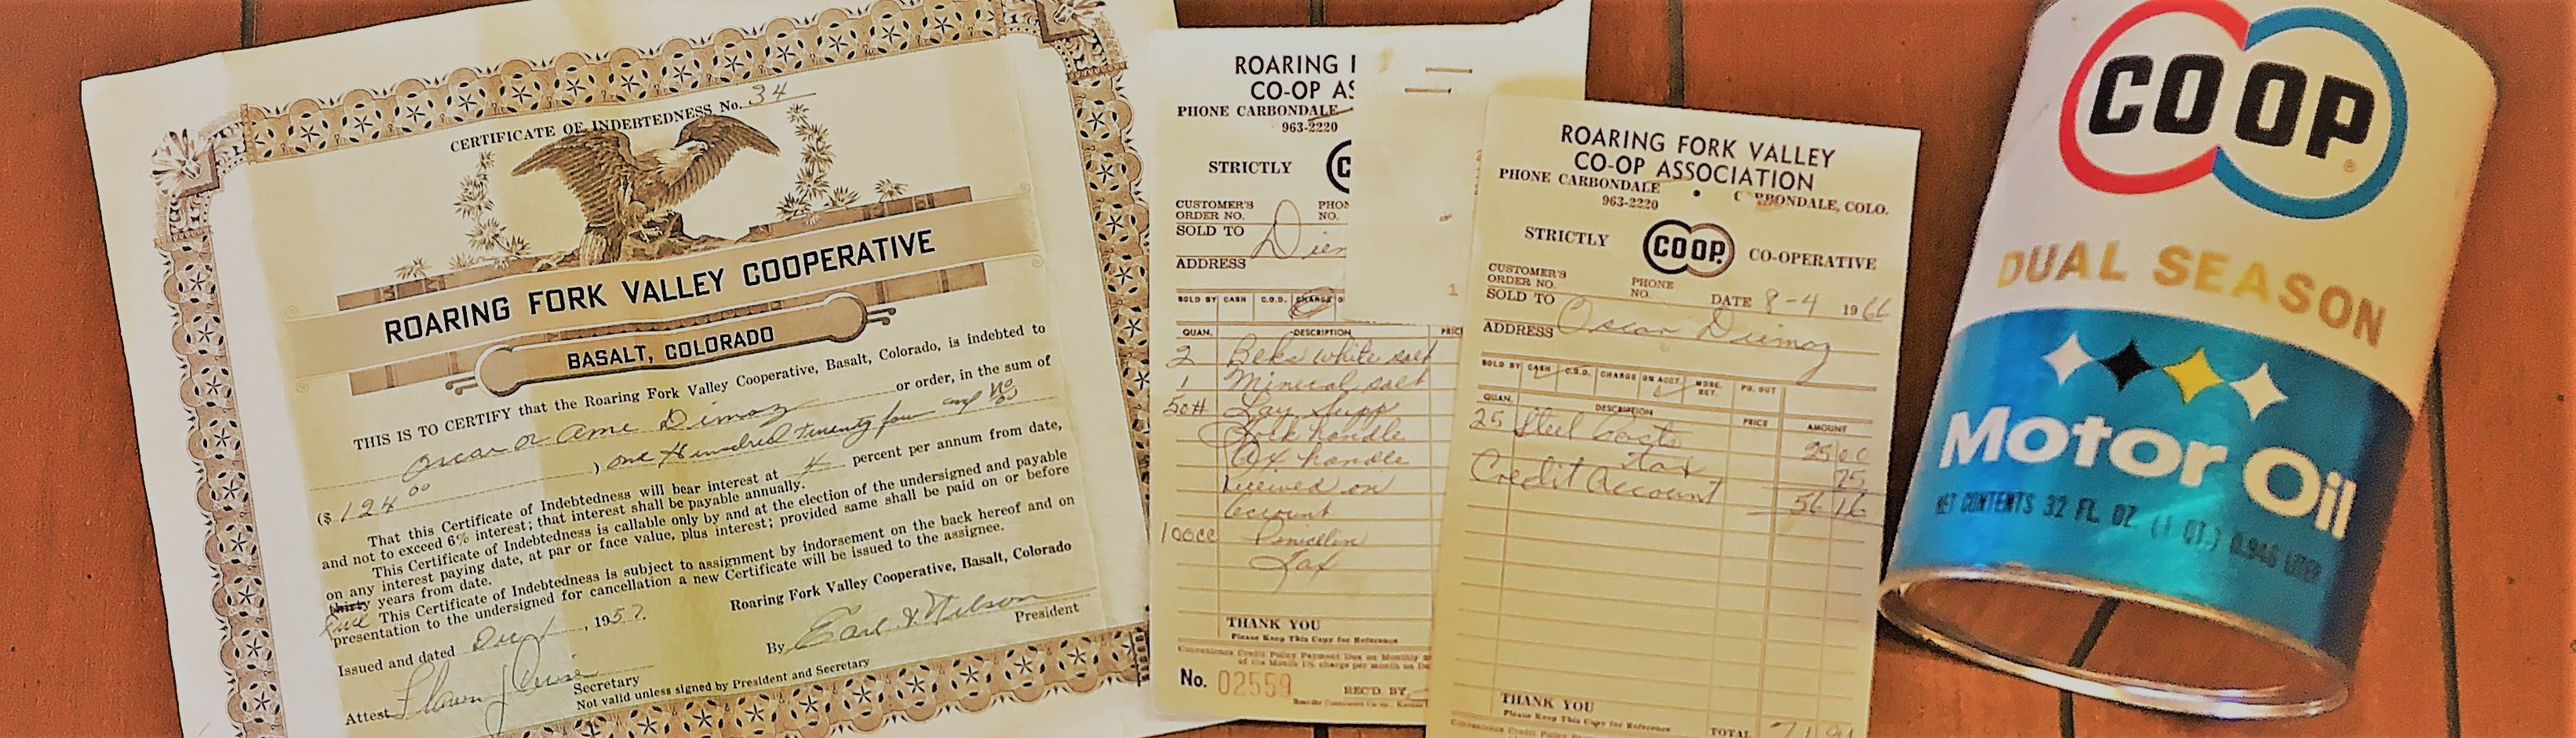 Co-op documents from the 1950s and 1960s and a can of Co-op motor oil